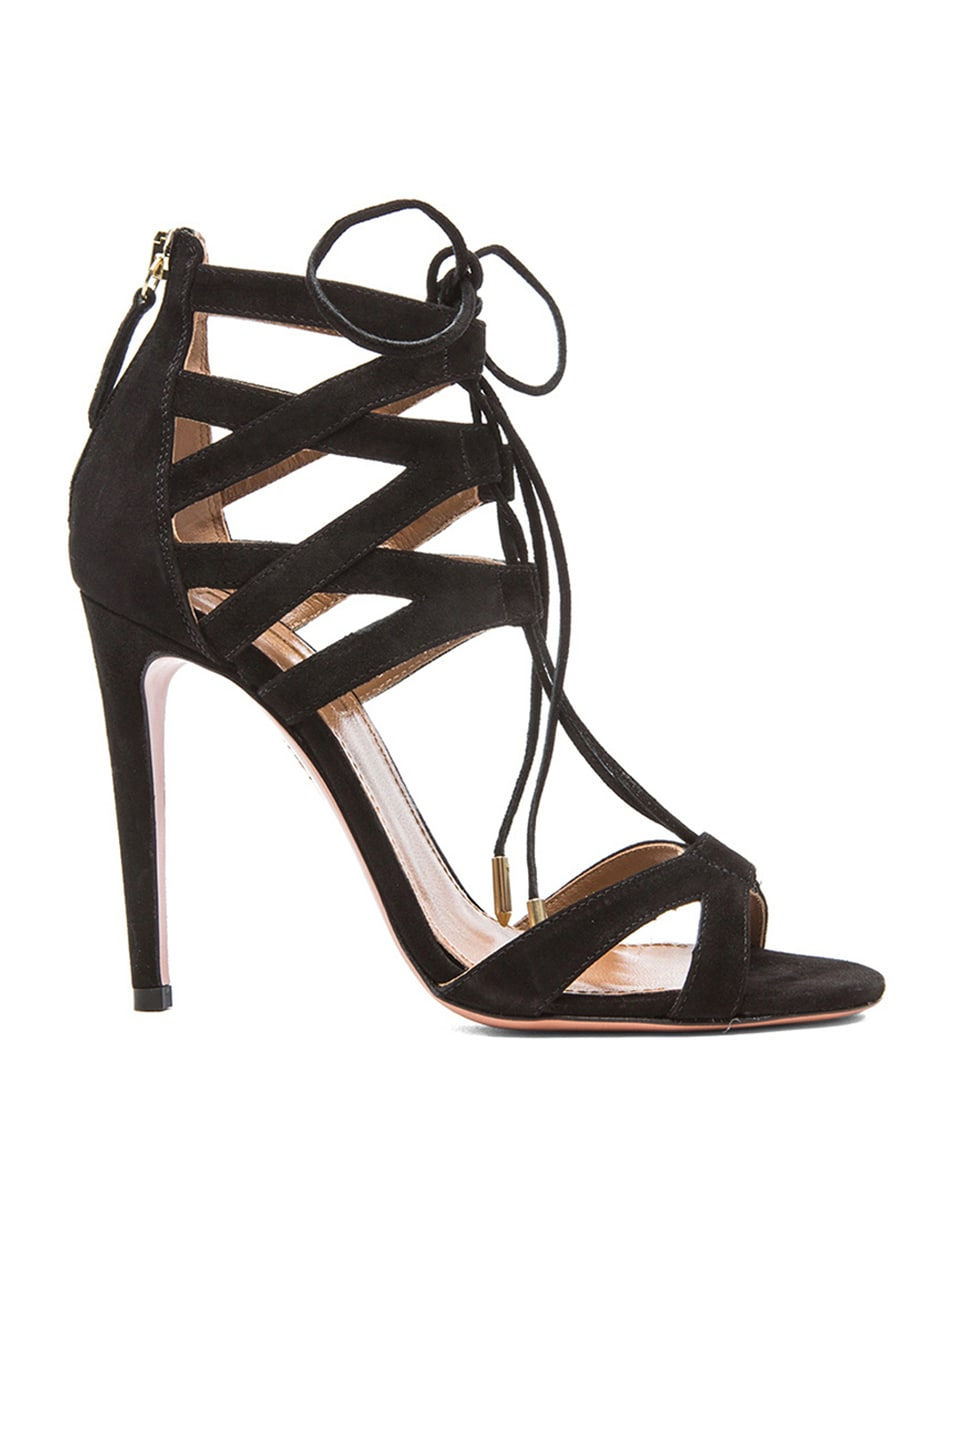 Image 1 of Aquazzura Beverly Hills Suede Sandals in Black